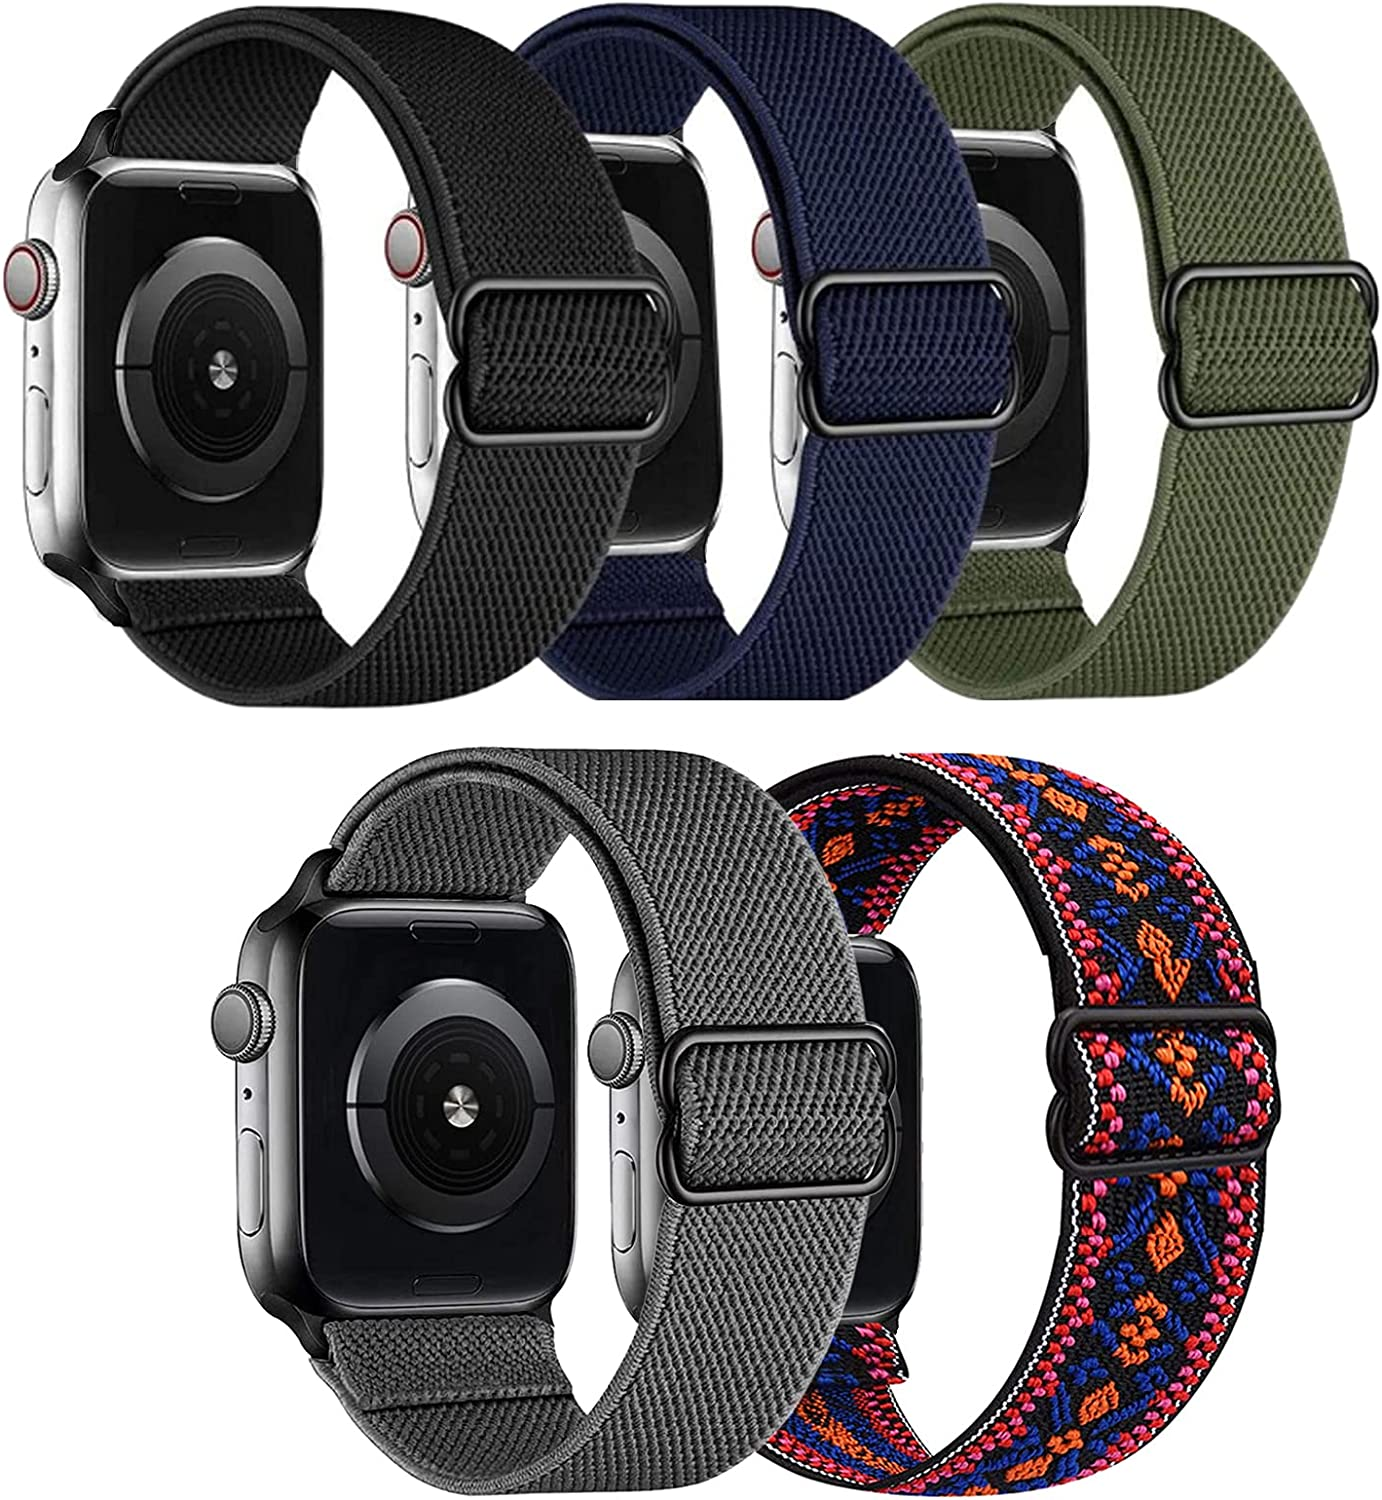 5 Pack Stretchy Nylon Solo Loop Bands Compatible with Apple Watch 44mm 42mm, Adjustable Stretch Braided Sport Elastics Women Men Strap Wristband Compatible with iWatch Series SE 6 5 4 3 2 1